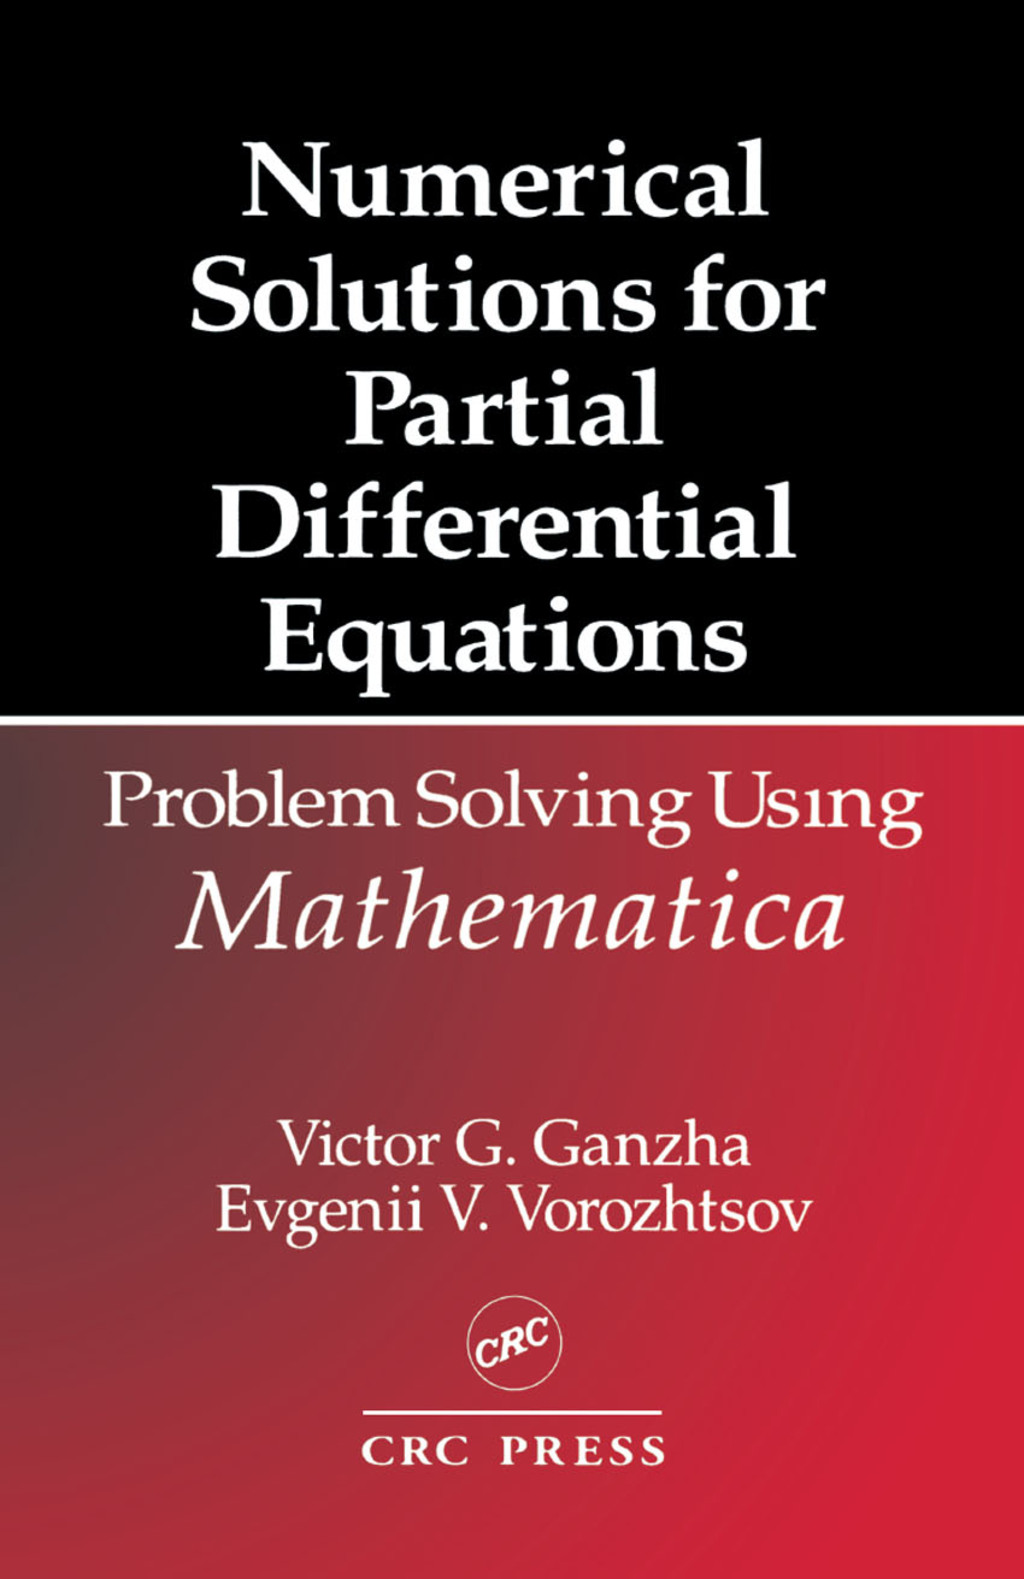 Numerical Solutions for Partial Differential Equations (eBook Rental)